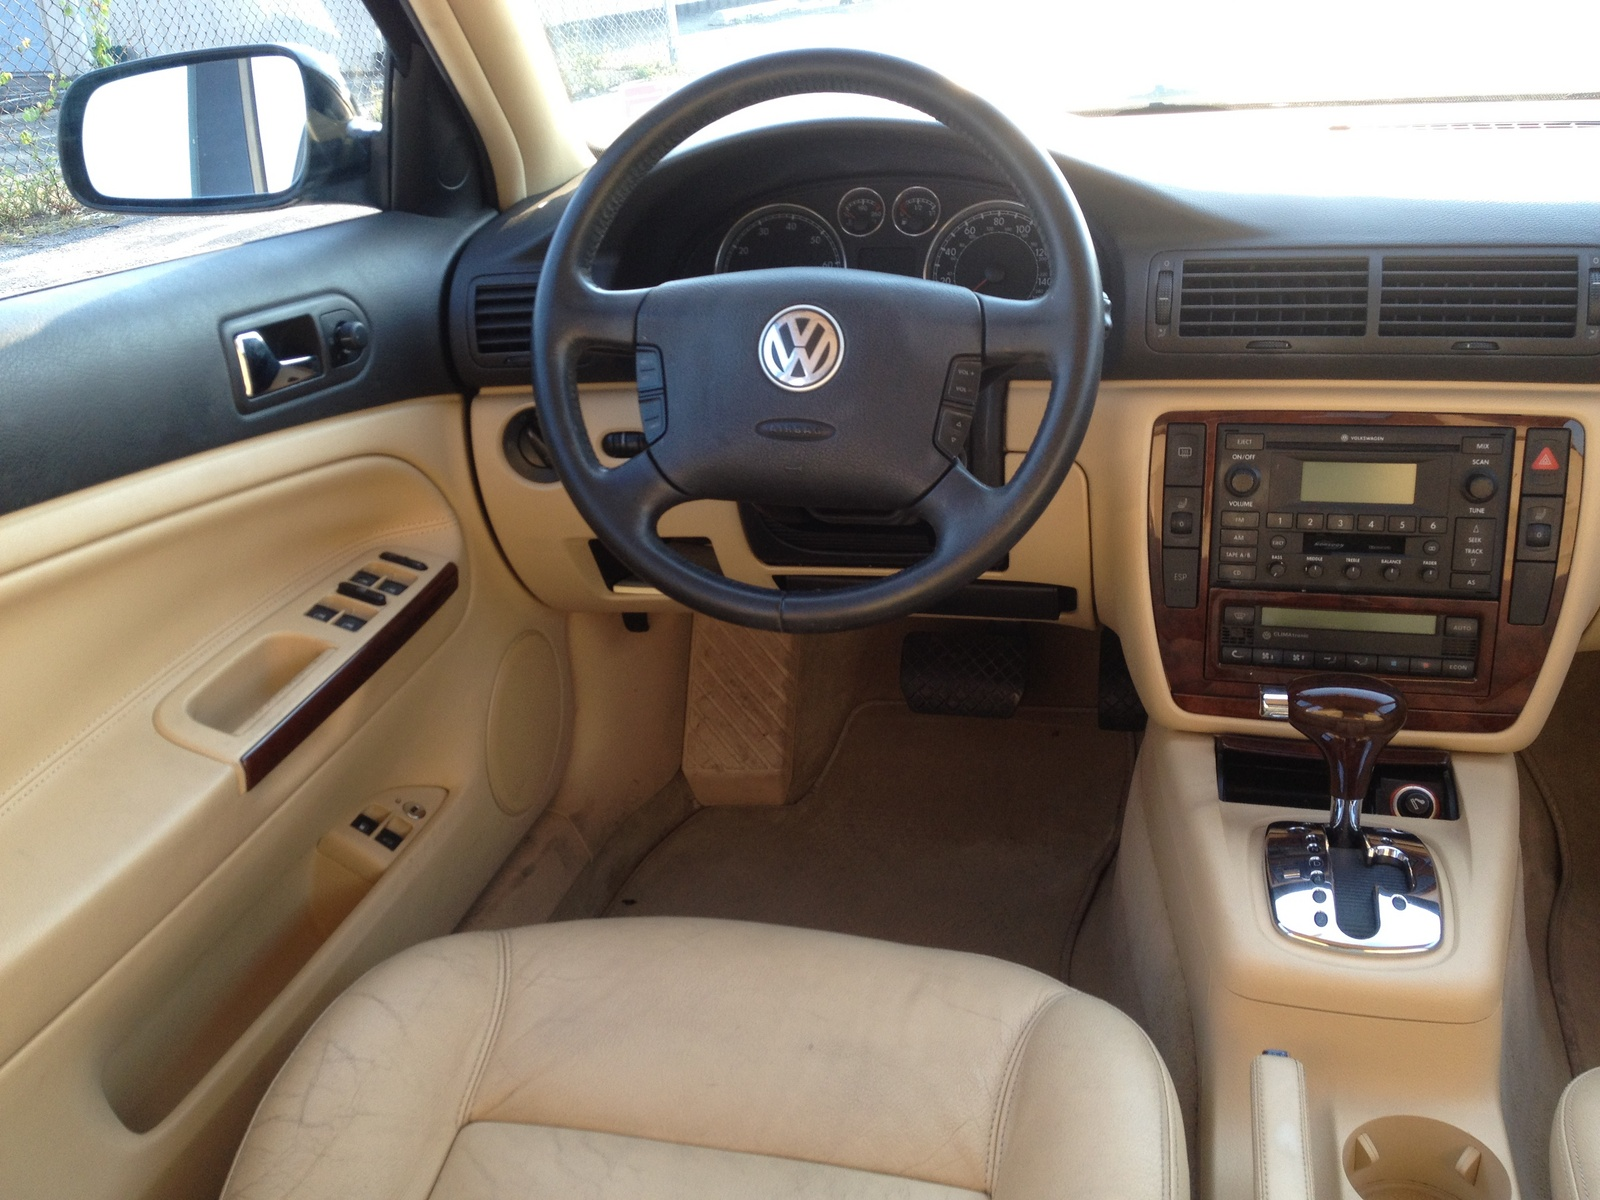 2006 Volkswagen Jetta Interior 2017 2018 2019 Volkswagen Reviews